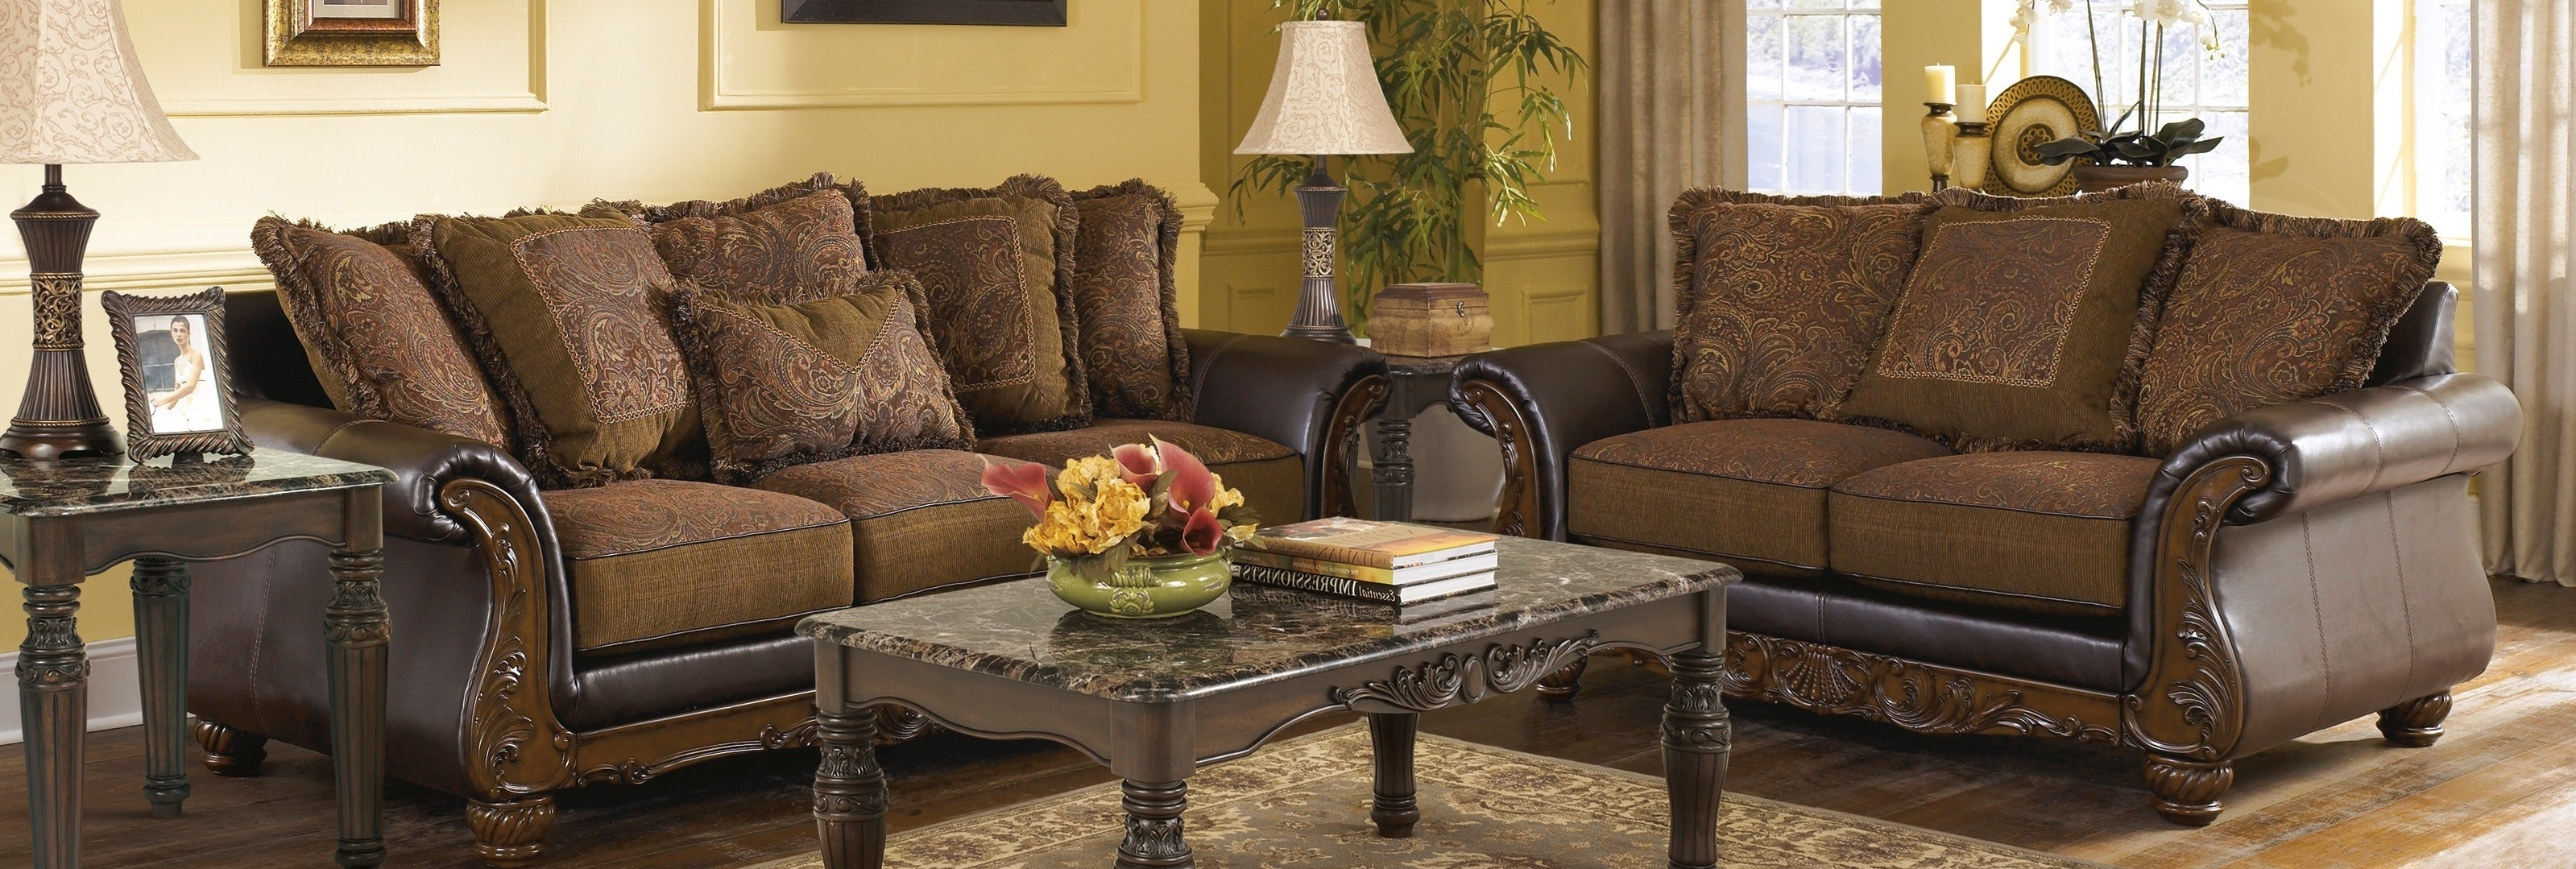 Amazing Idea Aarons Living Room Furniture Ideas Brown Adorable With Regard To 2017 Sectional Sofas At Aarons (View 11 of 15)